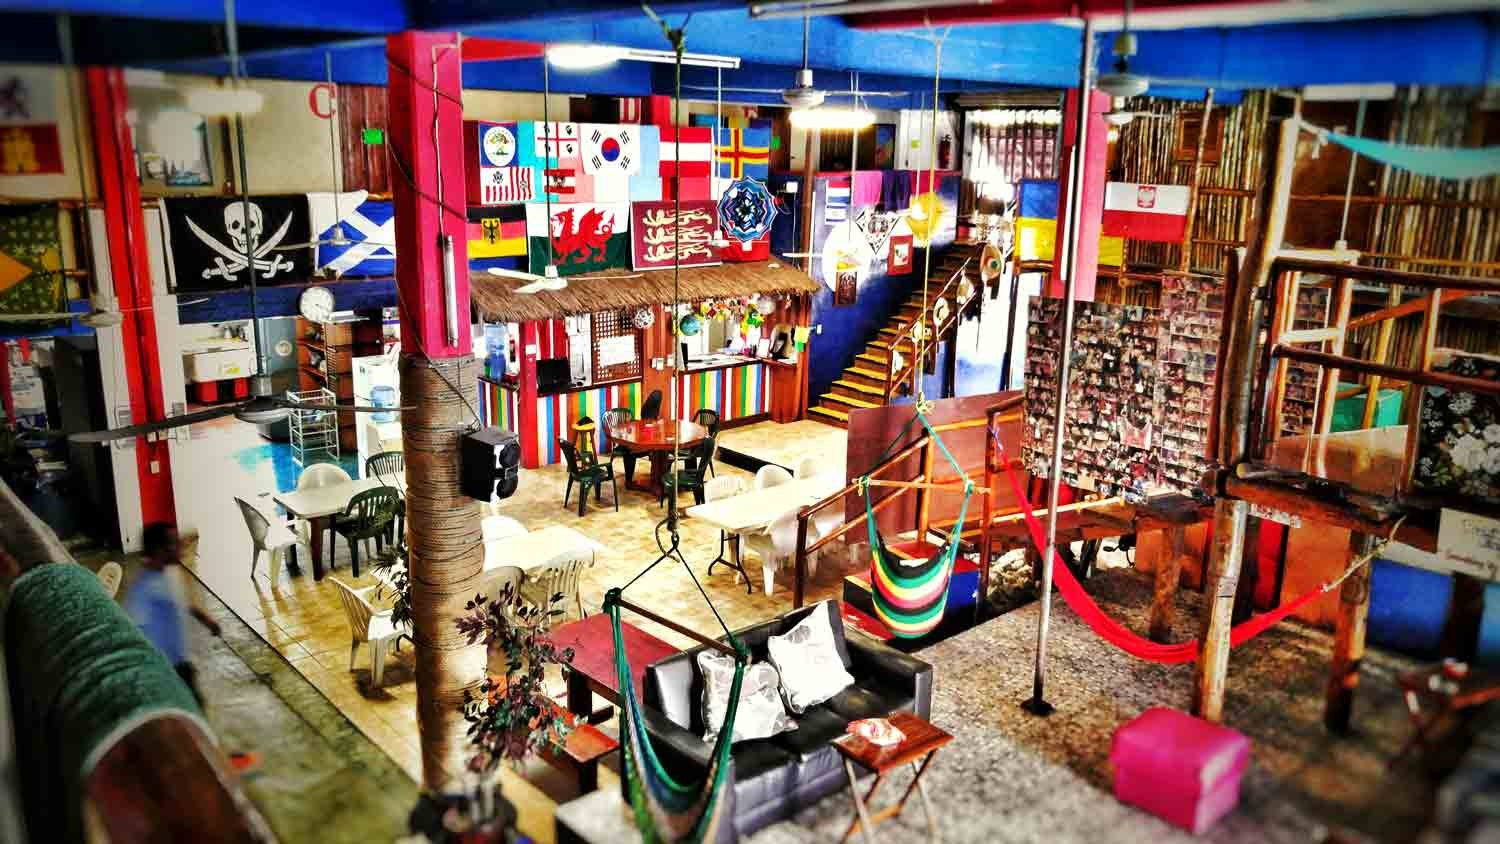 The interior of Hostel Playa in Playa Del Carmen Mexico.